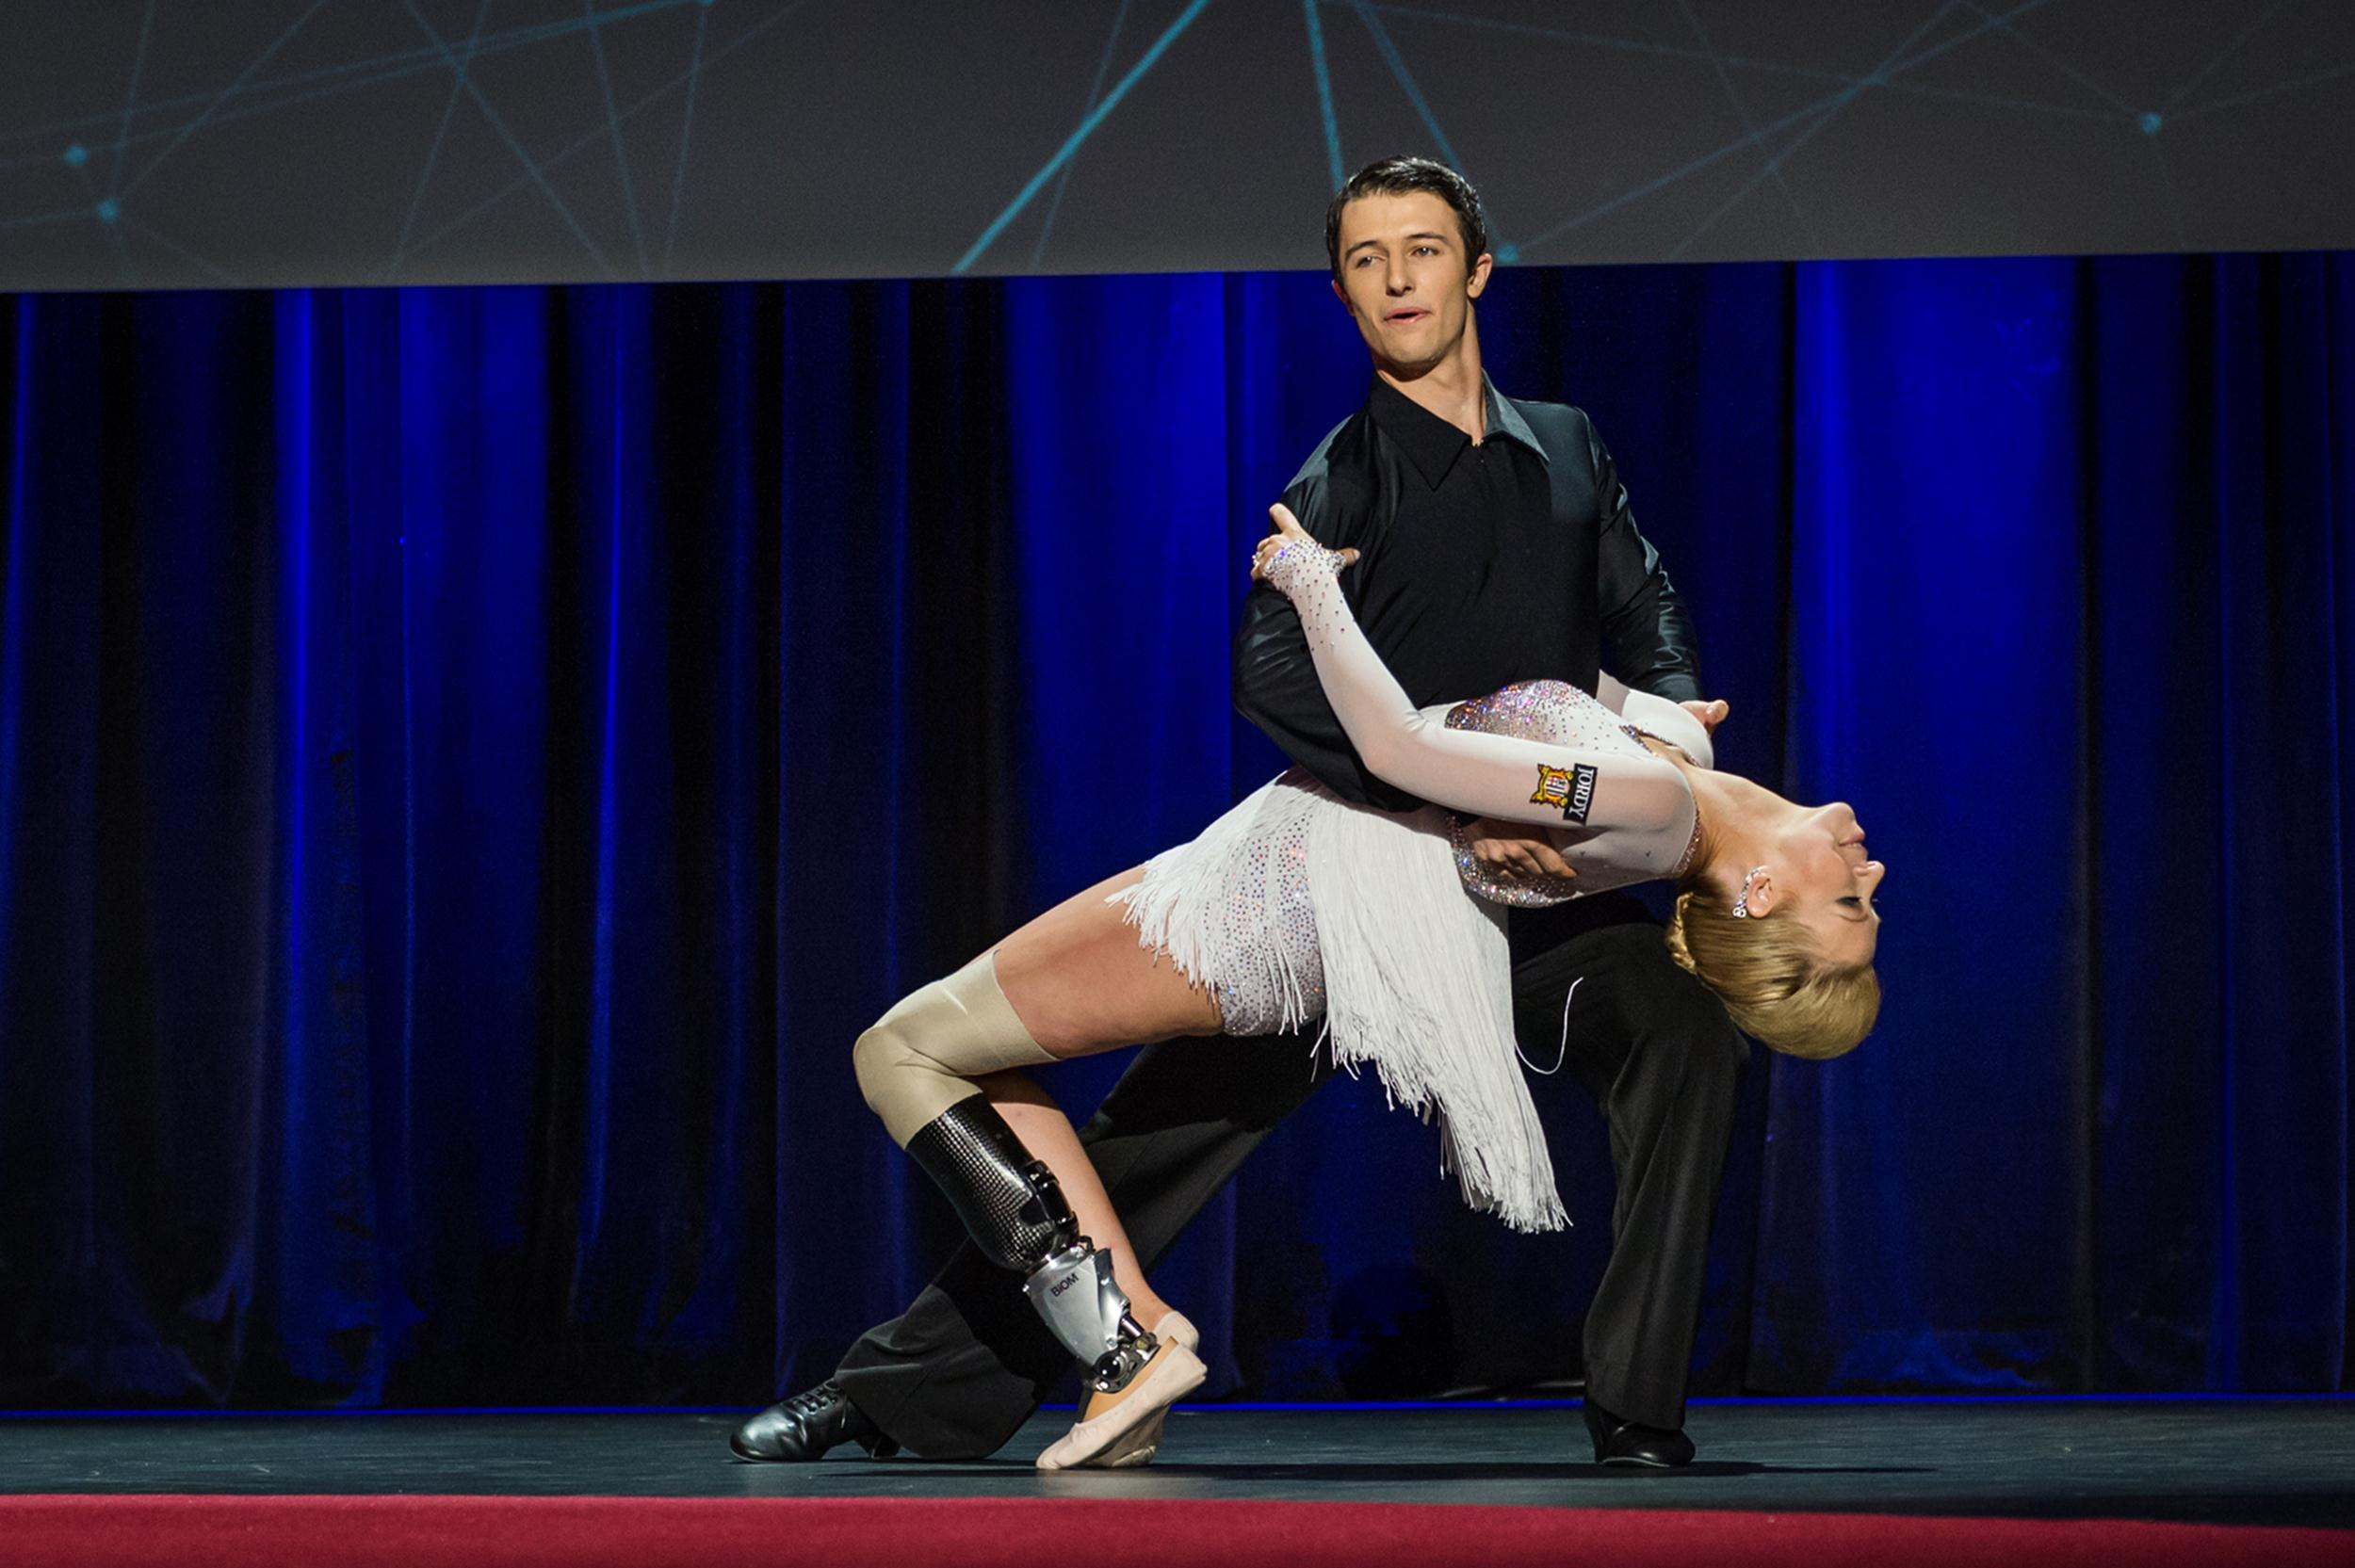 Image: Dancer Christian Lightner, dips Boston Marathon bombing survivor Adrianne Haslet-Davis as they dance at the international TED 2014 conference at the  Vancouver Convention Center